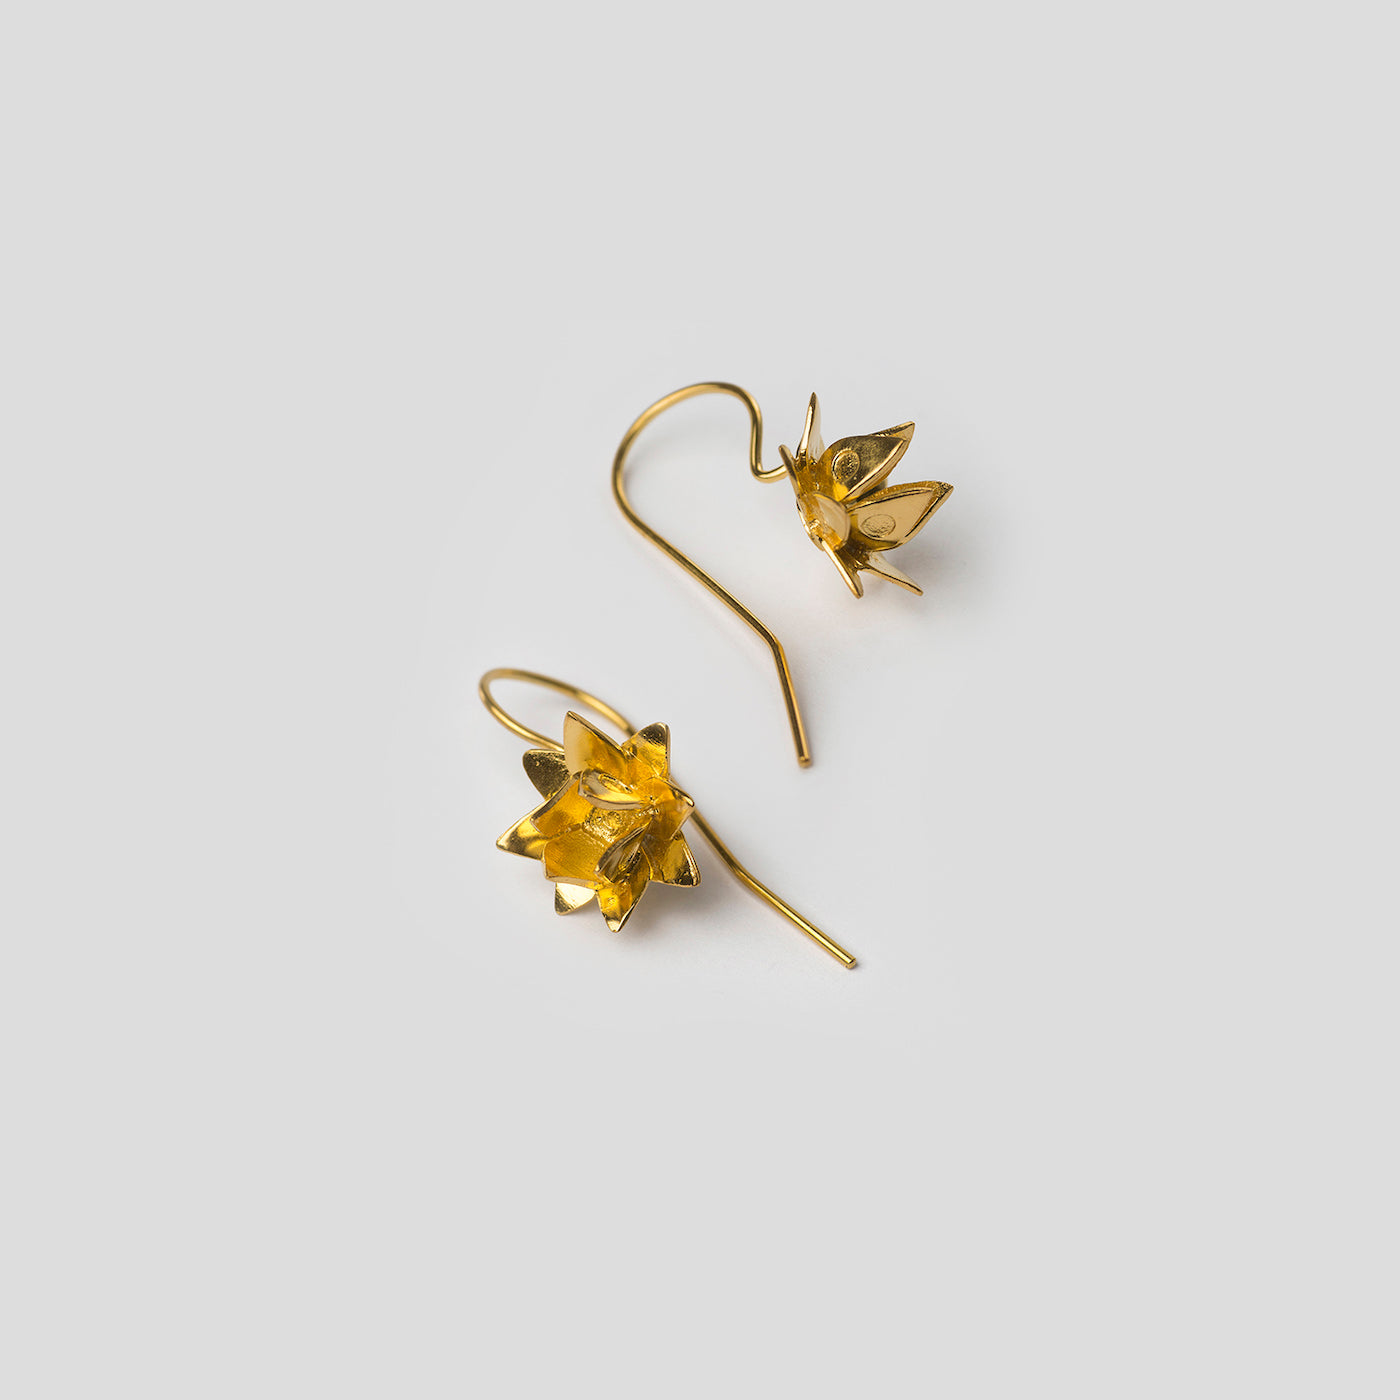 Gold Lotus Hook earrings by Brave Edith on white background